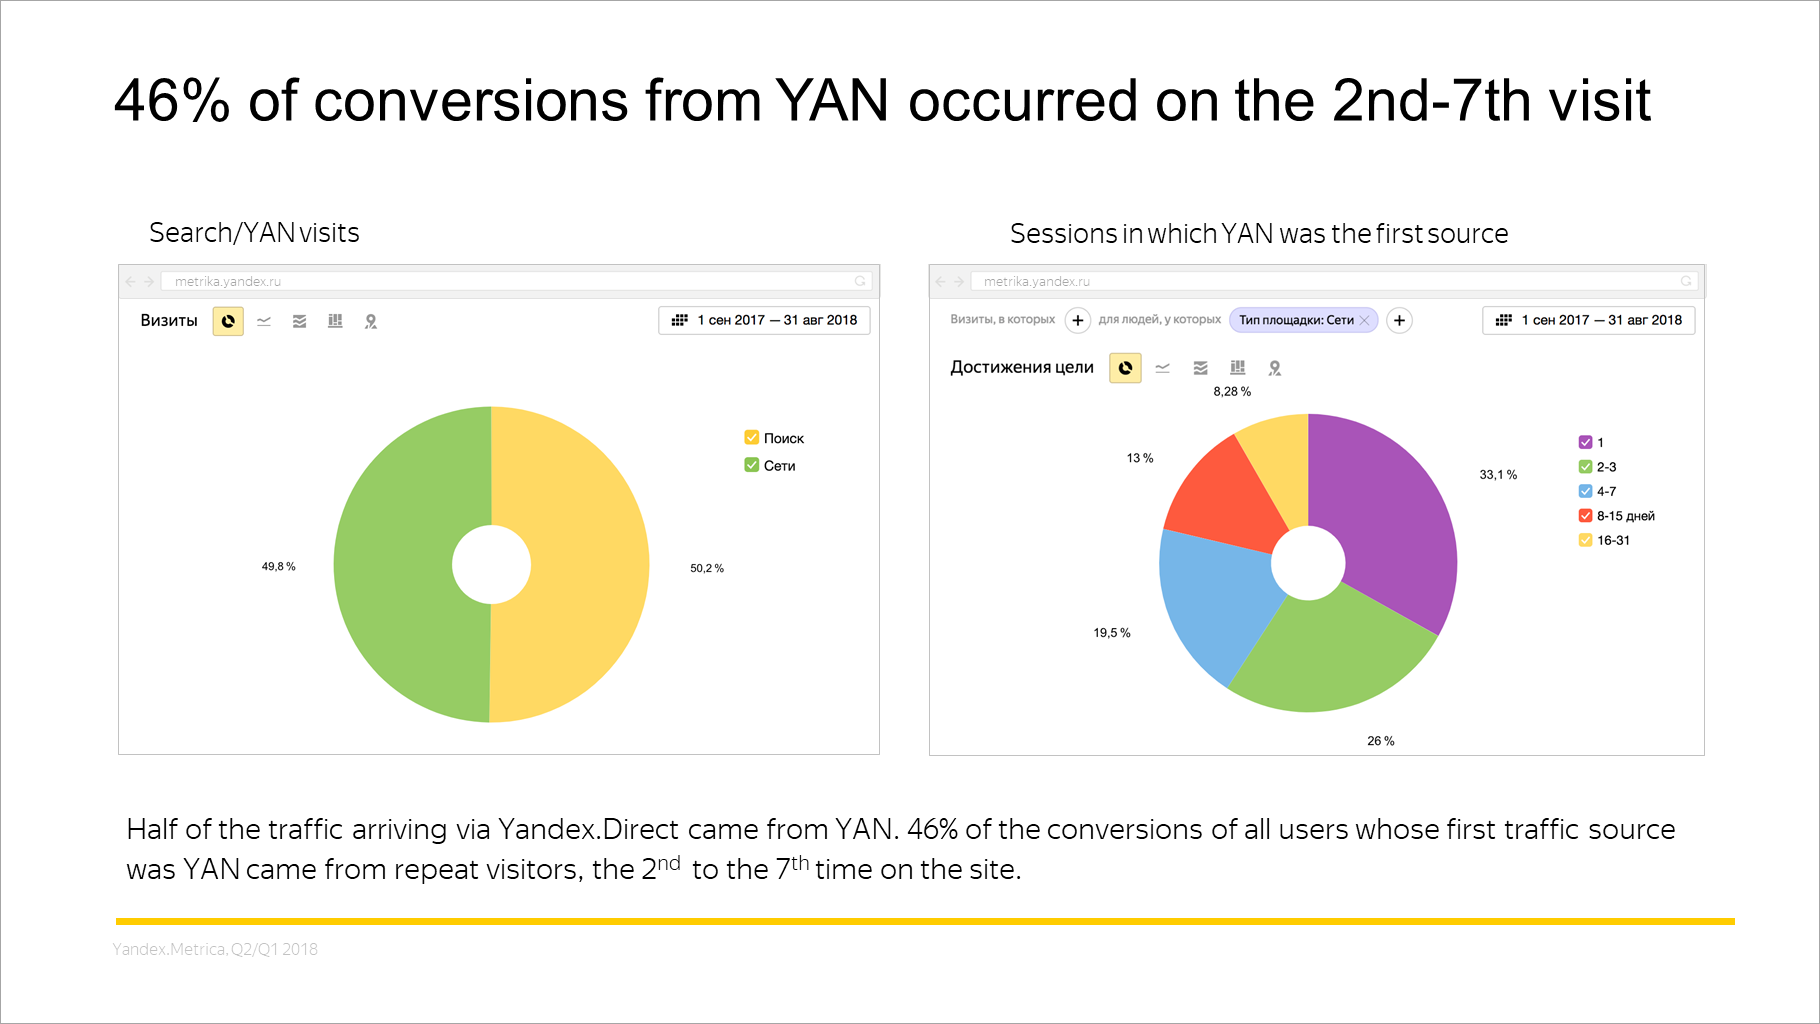 46% of conversions from YAN occurred on the 2nd-7th visit